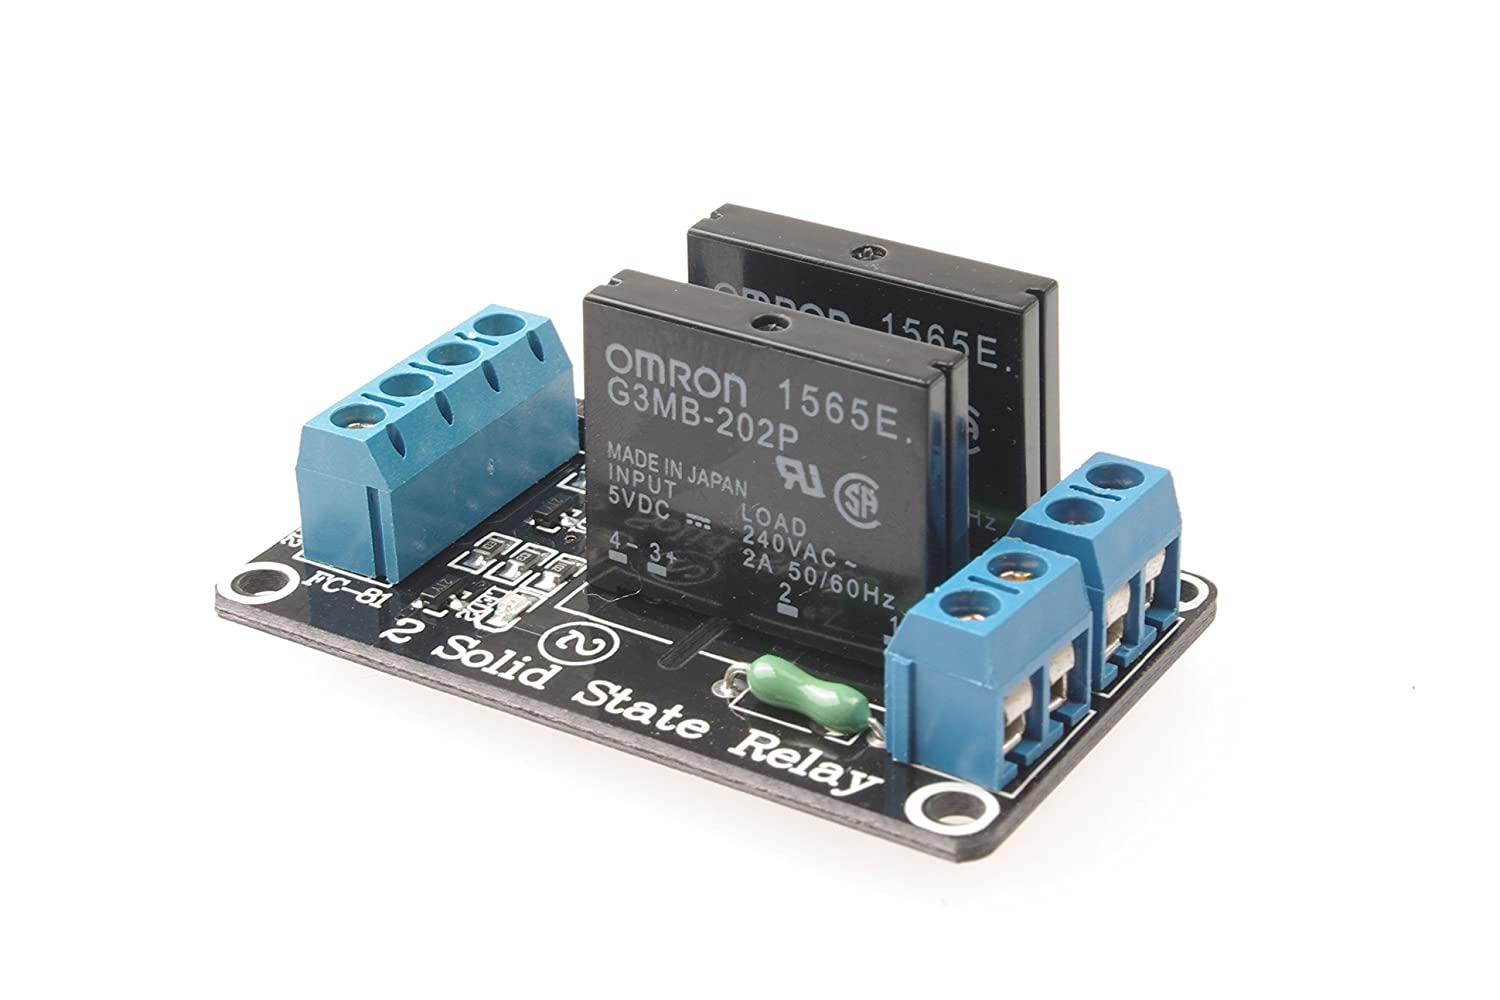 Smakn 5v 2 Channel Low Level Solid State Relay Board For Dc 1 Module High Fuse Arduino Uno Duemilanove Mega2560 Mega1280 Arm Dsp Pic Home Audio Theater